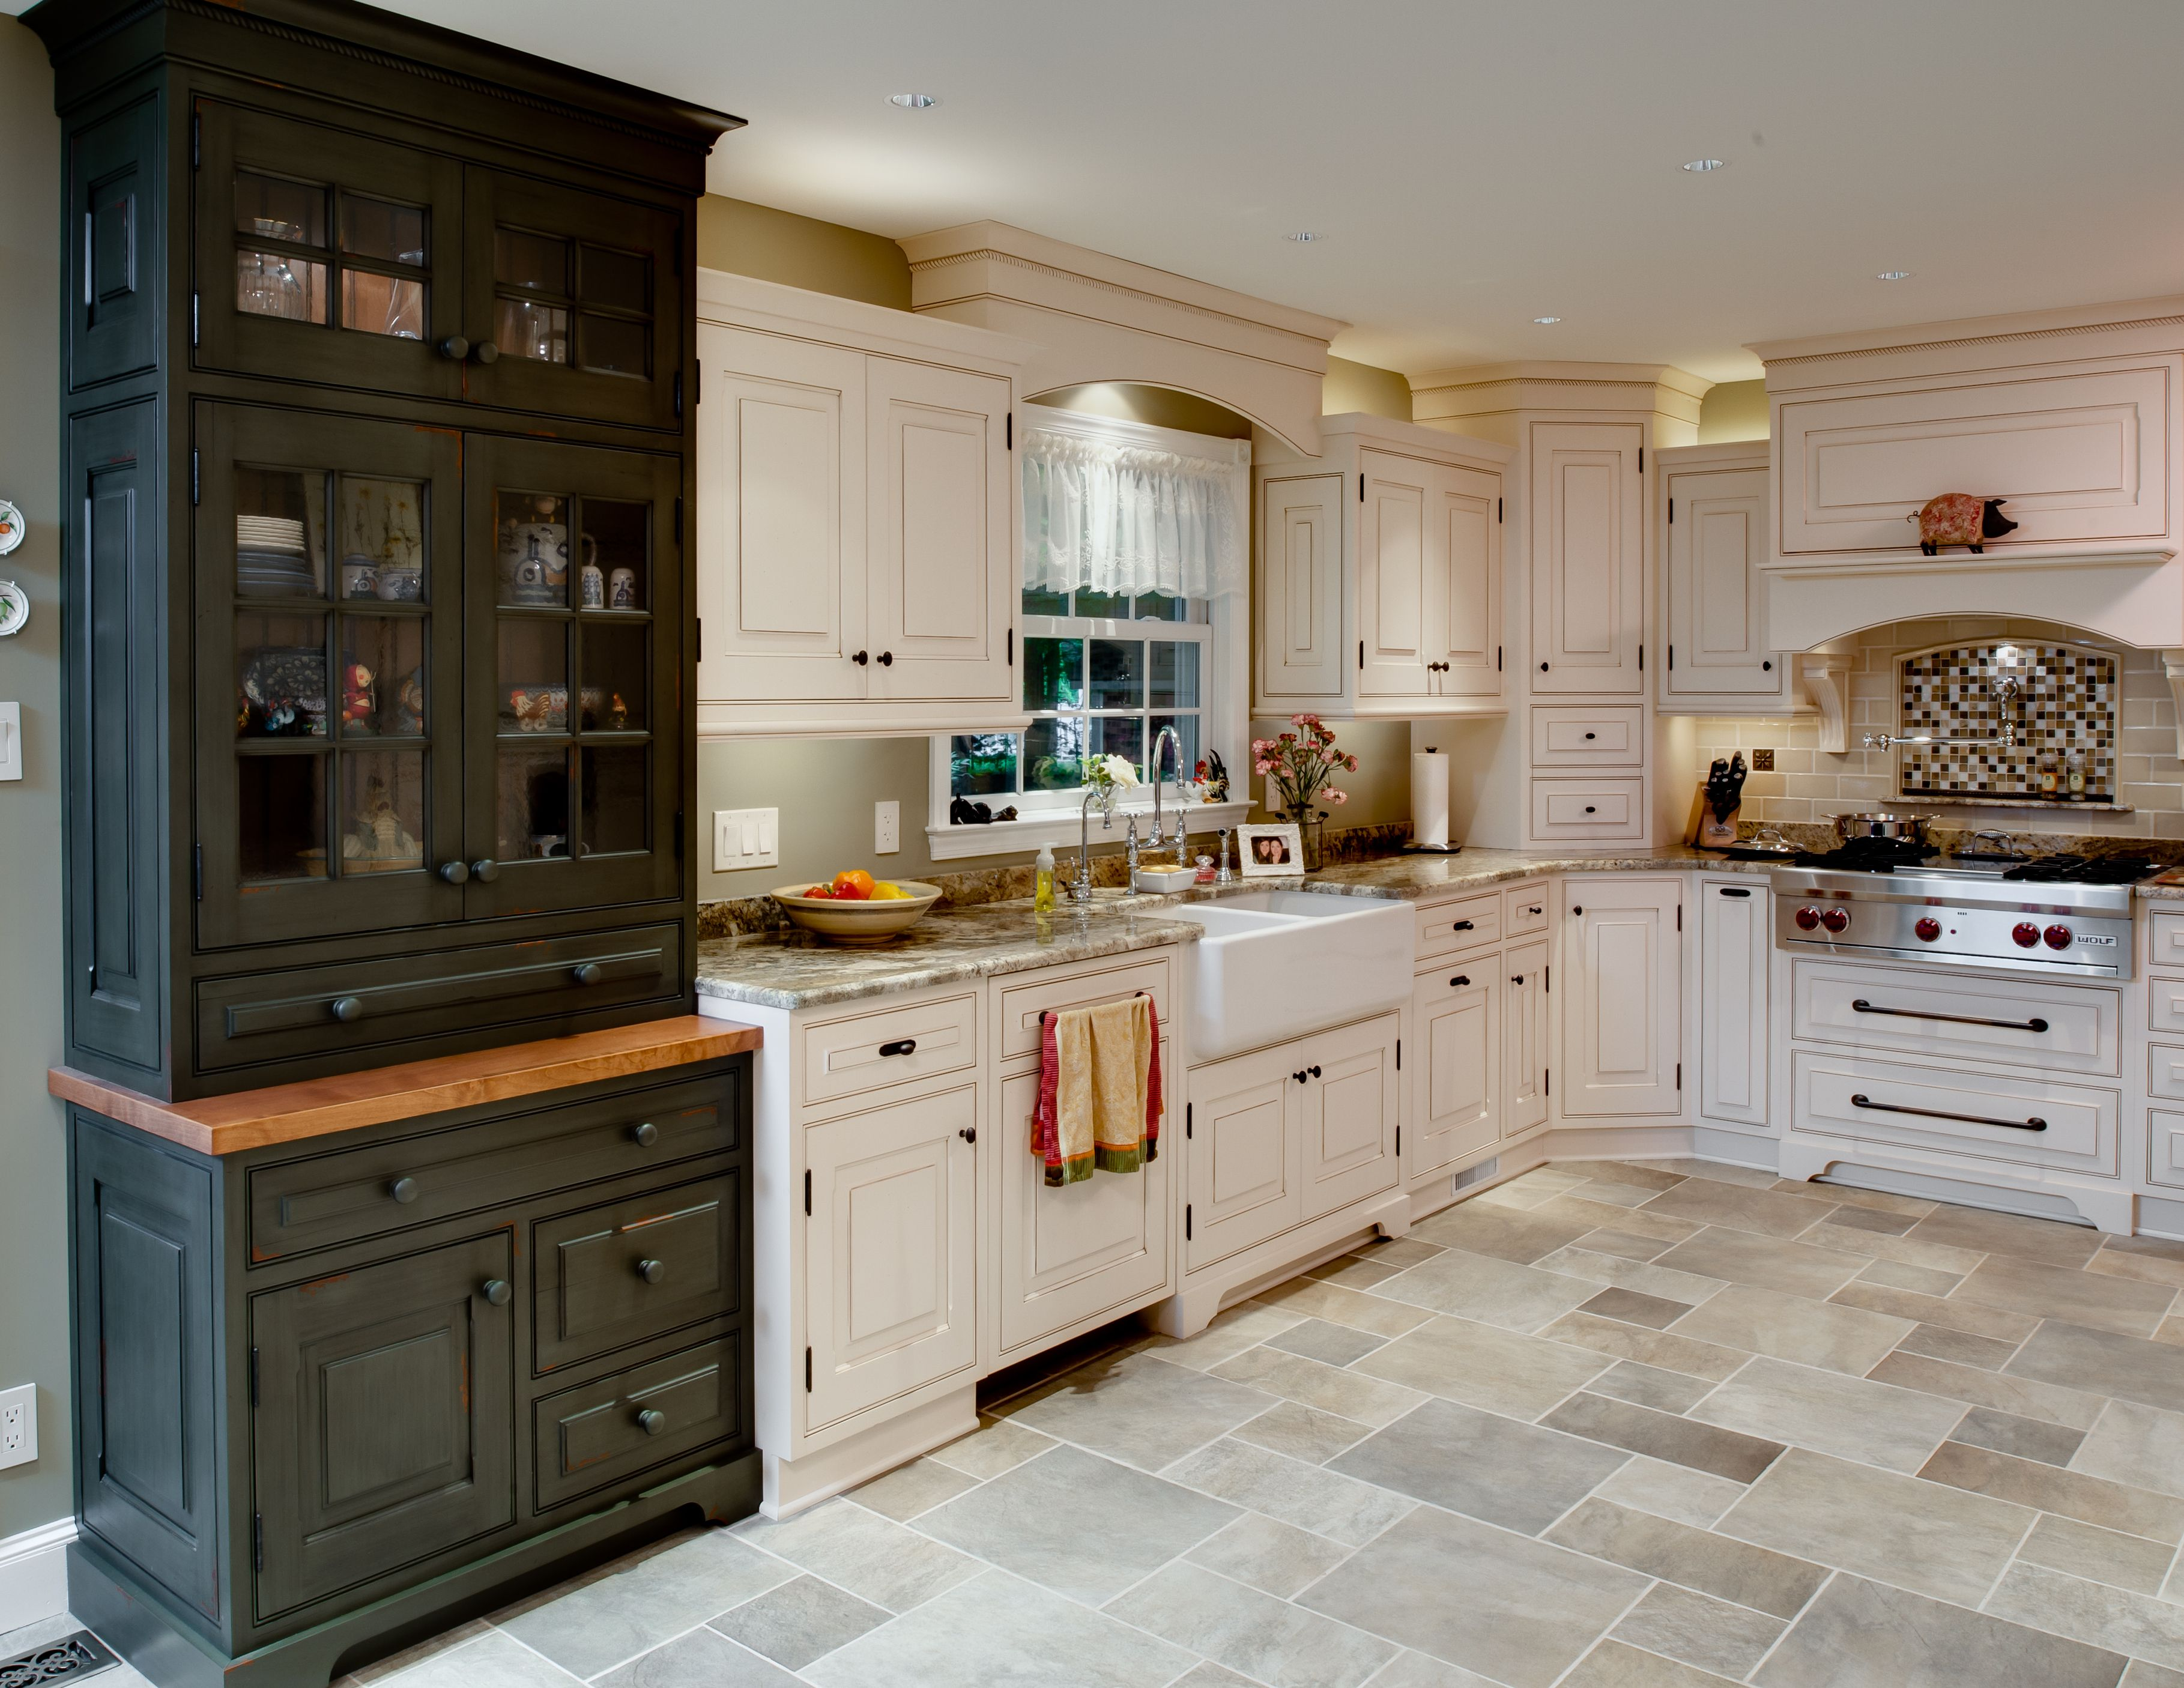 award winning kitchen designs 2013 award winning kitchen